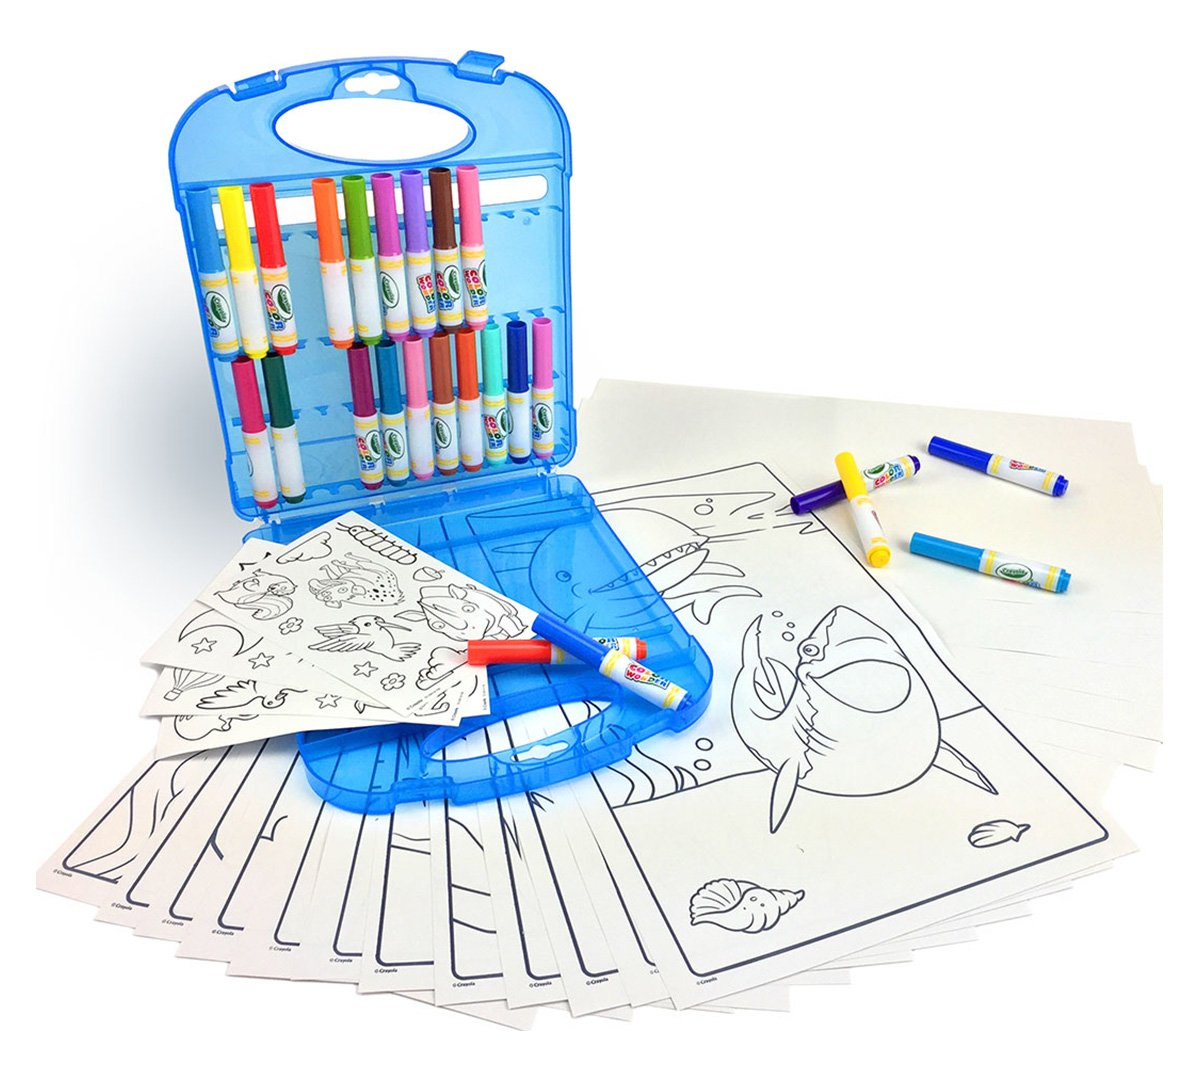 Crayola Color Wonder Mess Free Coloring Kit, Gift for Kids, 3, 4, 5, 6 (Amazon Exclusive)